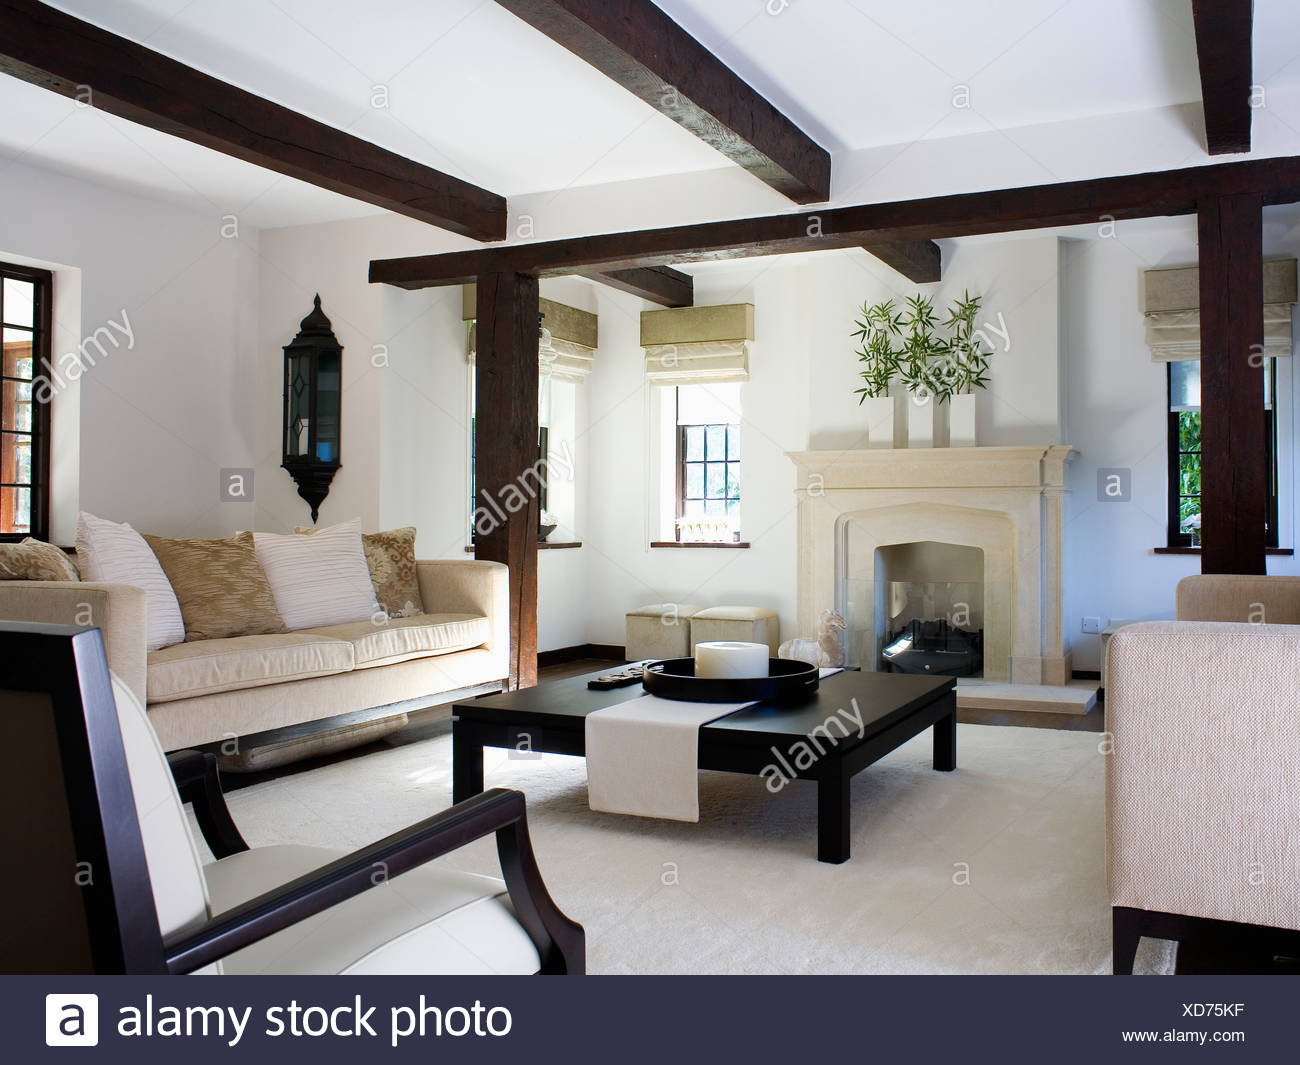 Beige Sofa And Large Black Coffee Table In Modern White Cottage Living Room With Stone Fireplace And White Carpet Stock Photo Alamy